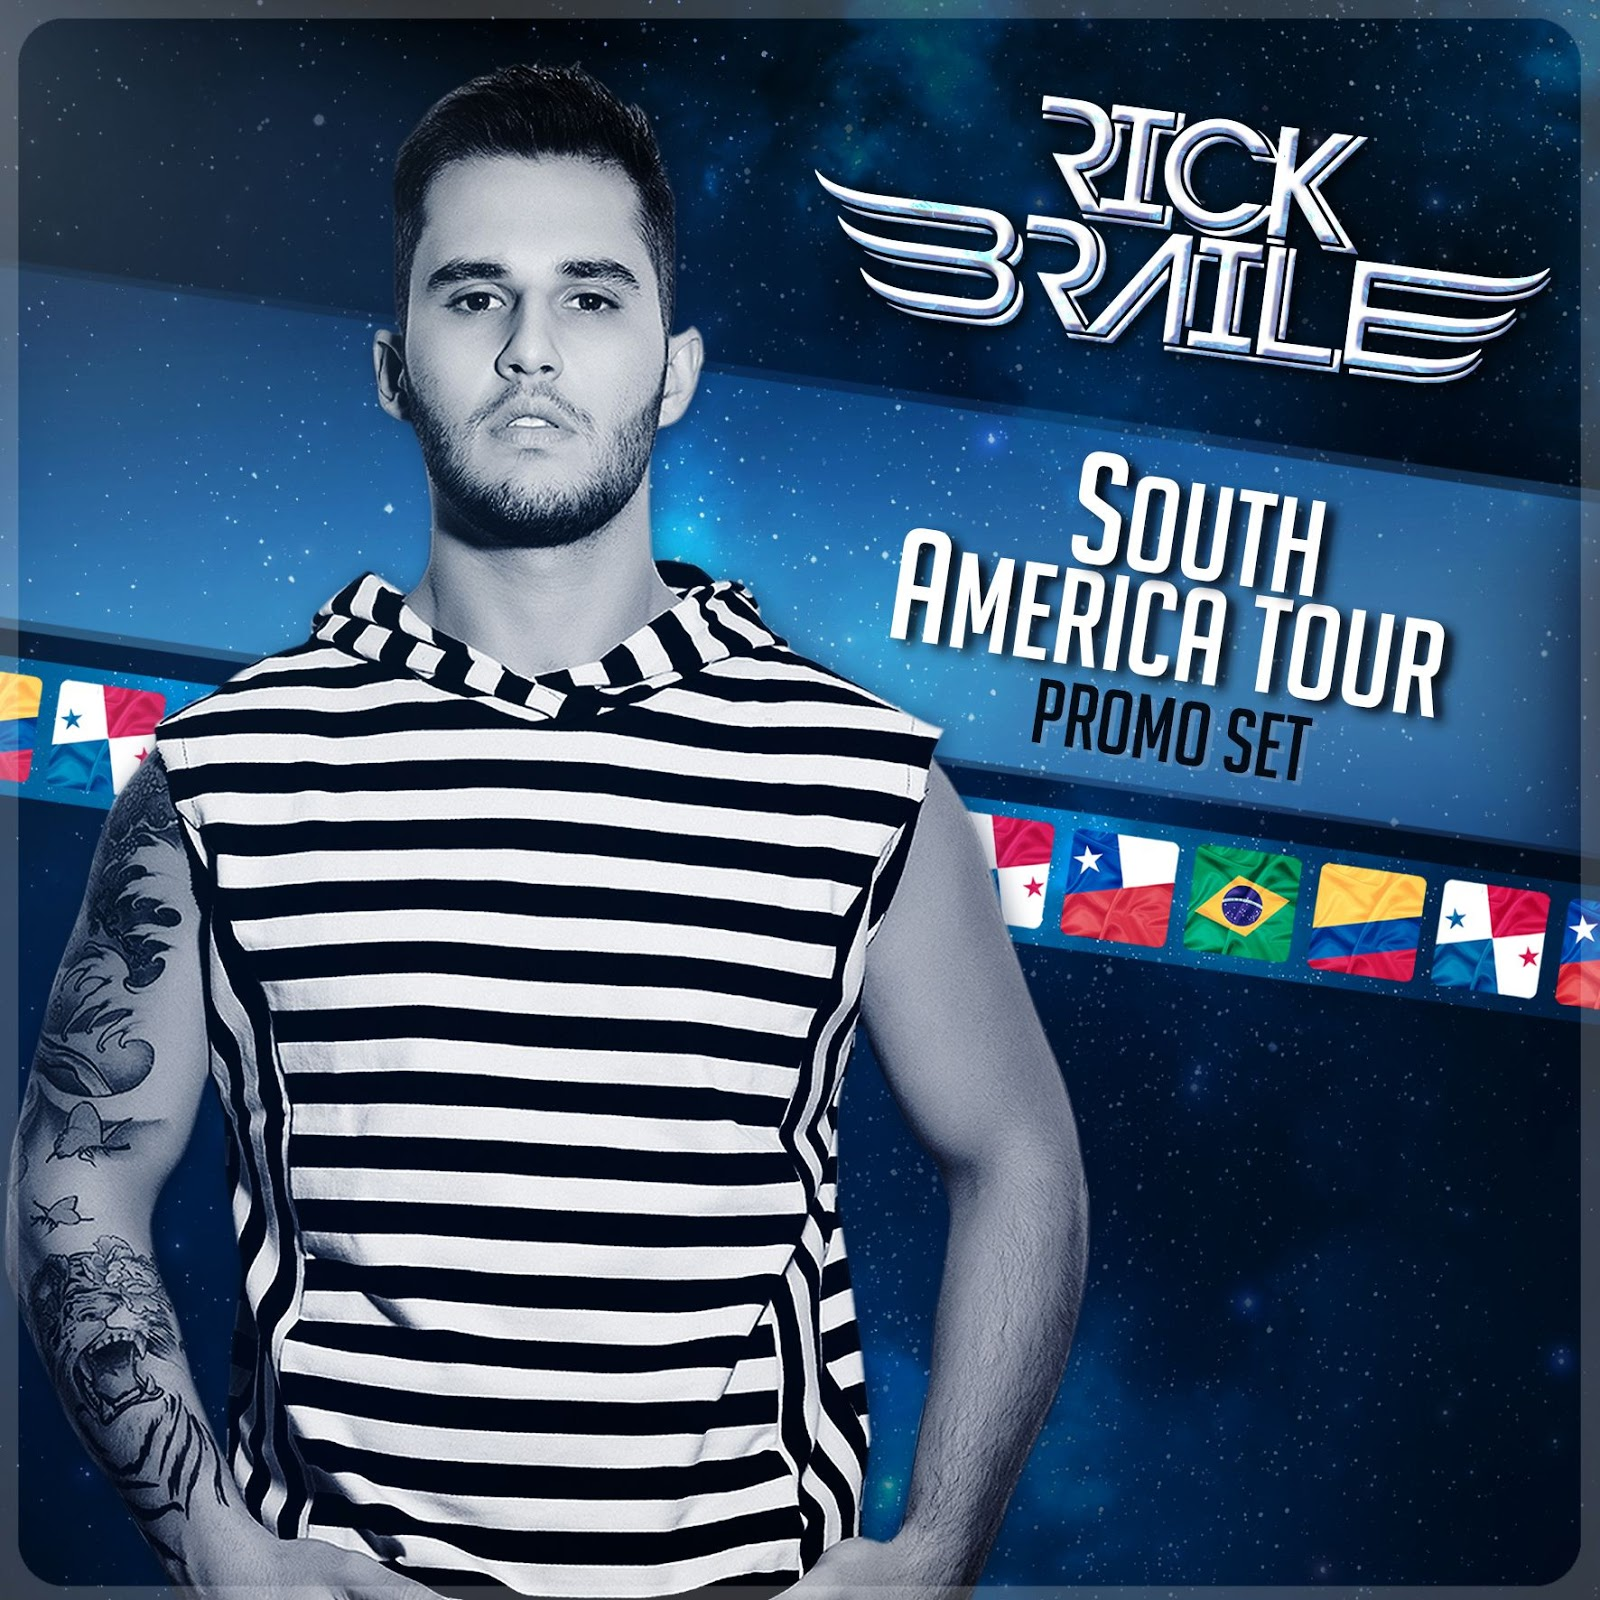 RICK BRAILE - SOUTH AMERICA TOUR PROMO SET